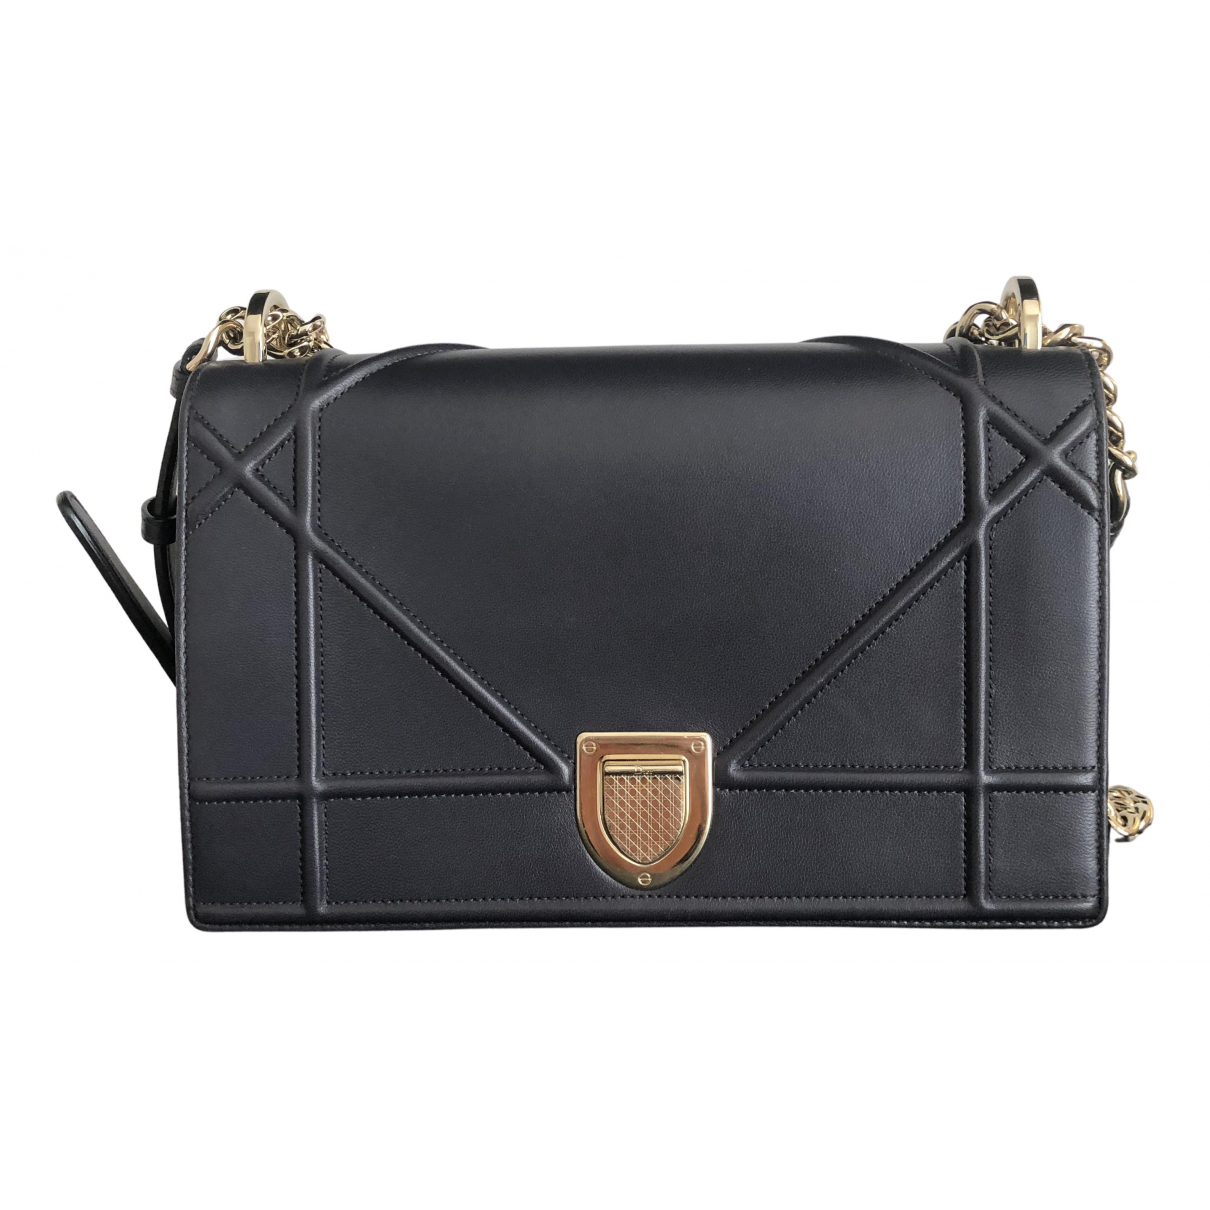 Dior Diorama Anthracite Leather handbag for Women \N